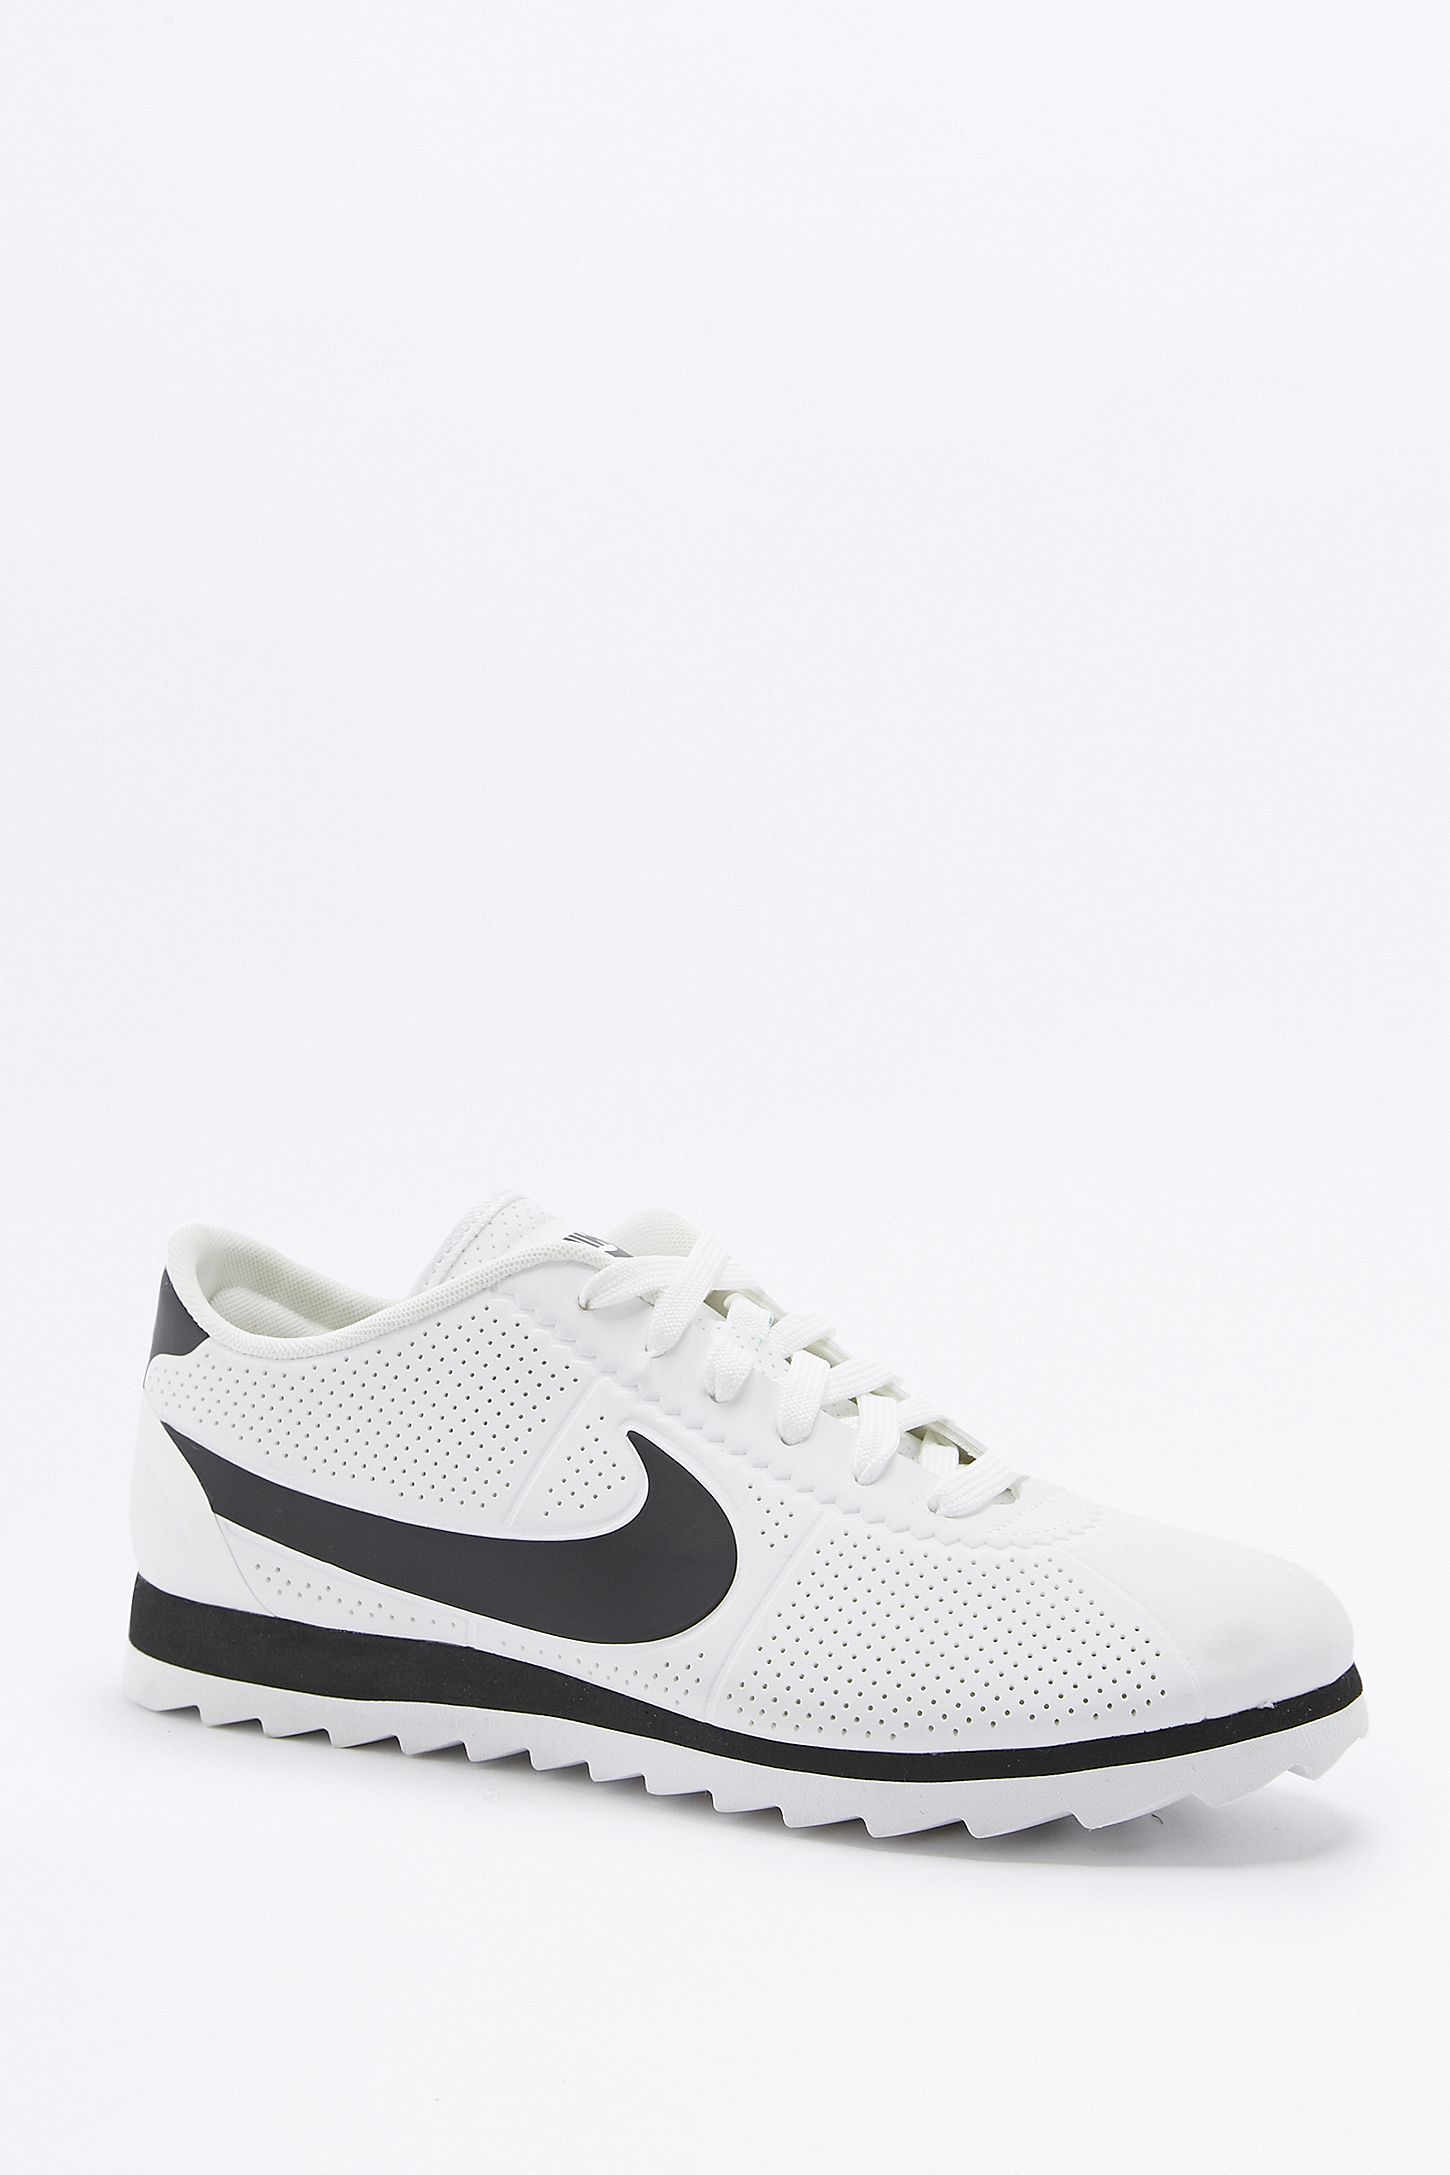 sports shoes 92622 d43e2 Nike Cortez Ultra Moire White and Black Trainers. Click on image to zoom.  Hover to zoom. Double Tap to Zoom